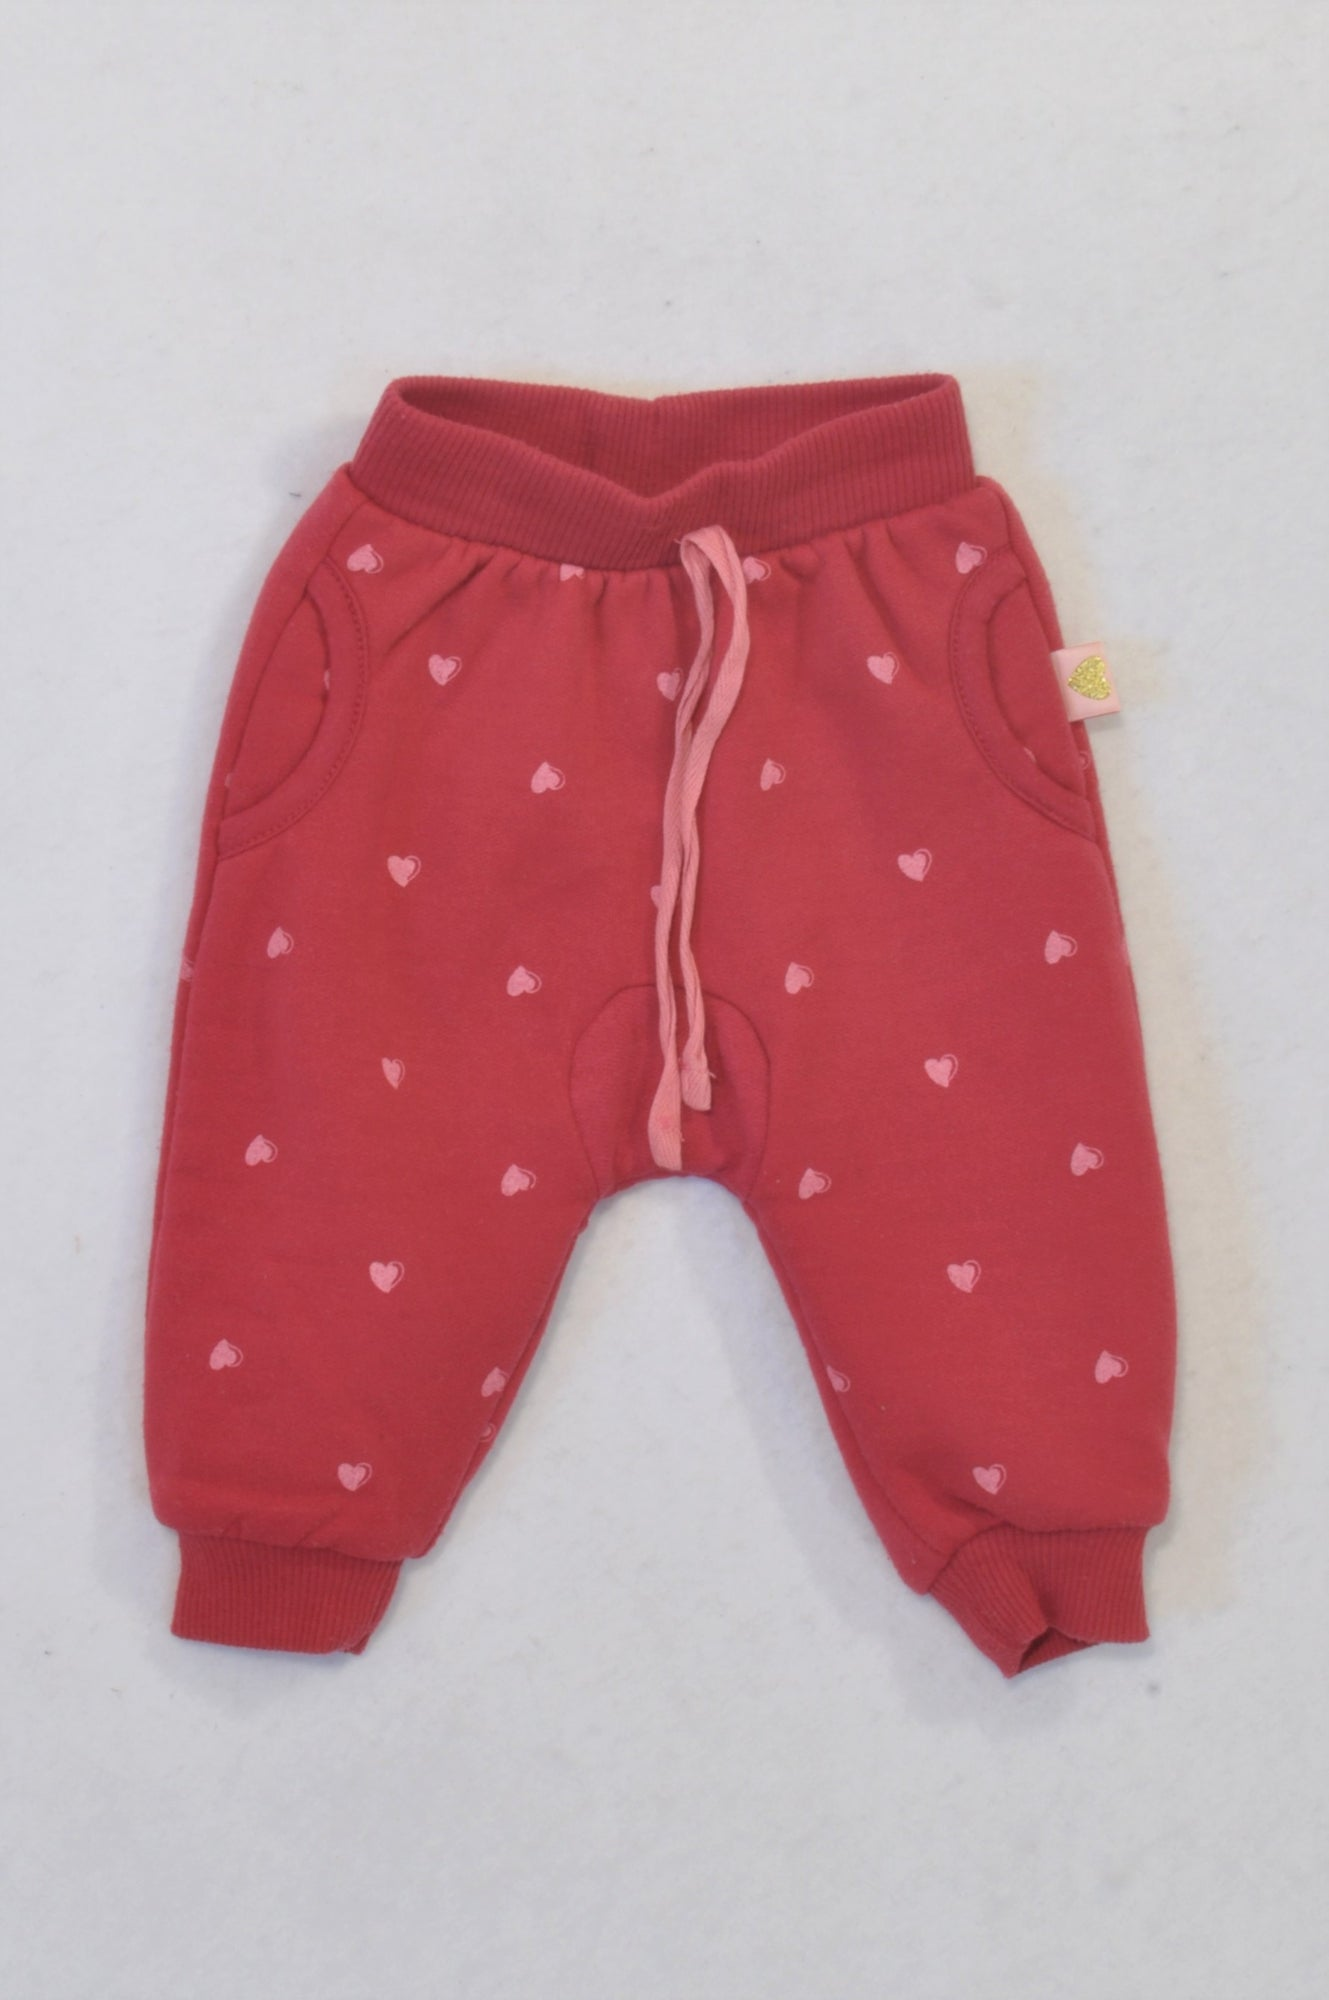 Ackermans Red & Pink Heart Track Pants Girls 3-6 months